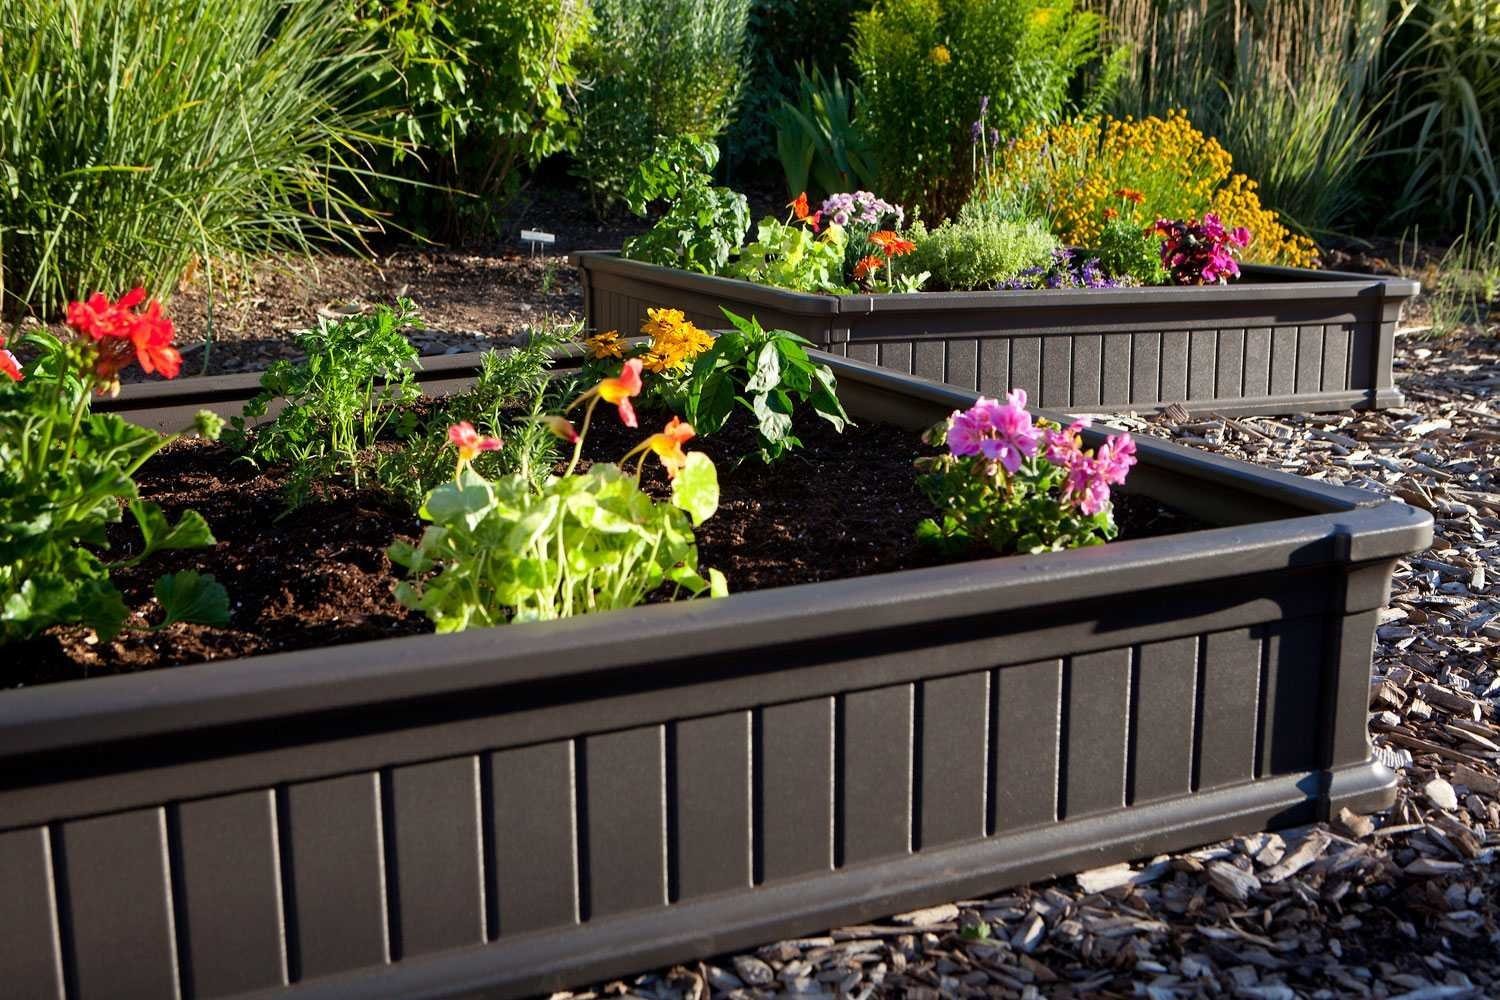 10 Inspiring DIY Raised Garden Beds-Ideas,Plans and Designs ... on xeriscaping designs, best small vegetable garden designs, rock garden designs, knot garden designs, raised bed shade gardens, shade garden designs, small perennial garden designs, raised planting beds, trellis designs, water garden designs, garden fence designs, simple landscape designs, garden enclosure designs, berry garden designs, raised beds for gardens, garden box designs, green wall designs, small raised garden designs, raised gardens for handicapped, wheelchair garden bed designs,